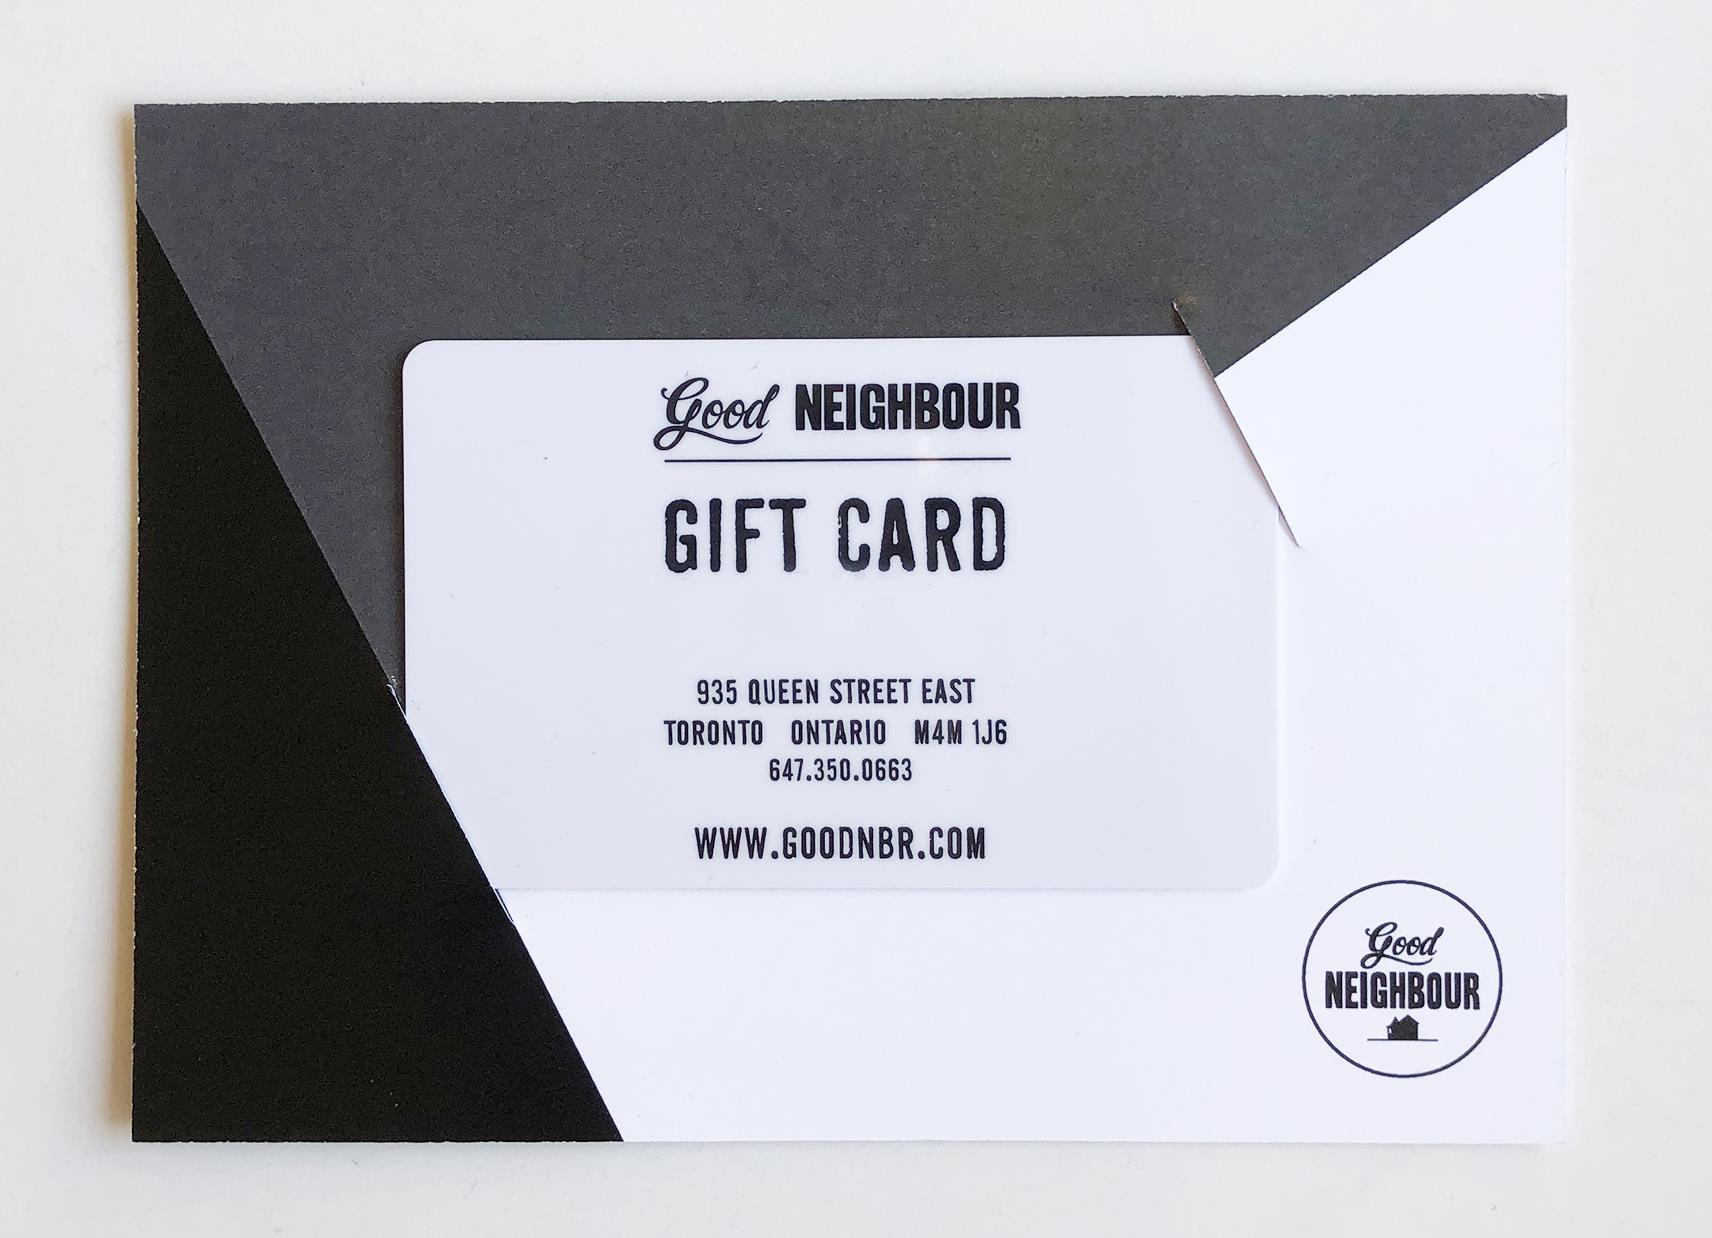 gift card in a cardboard sleeve